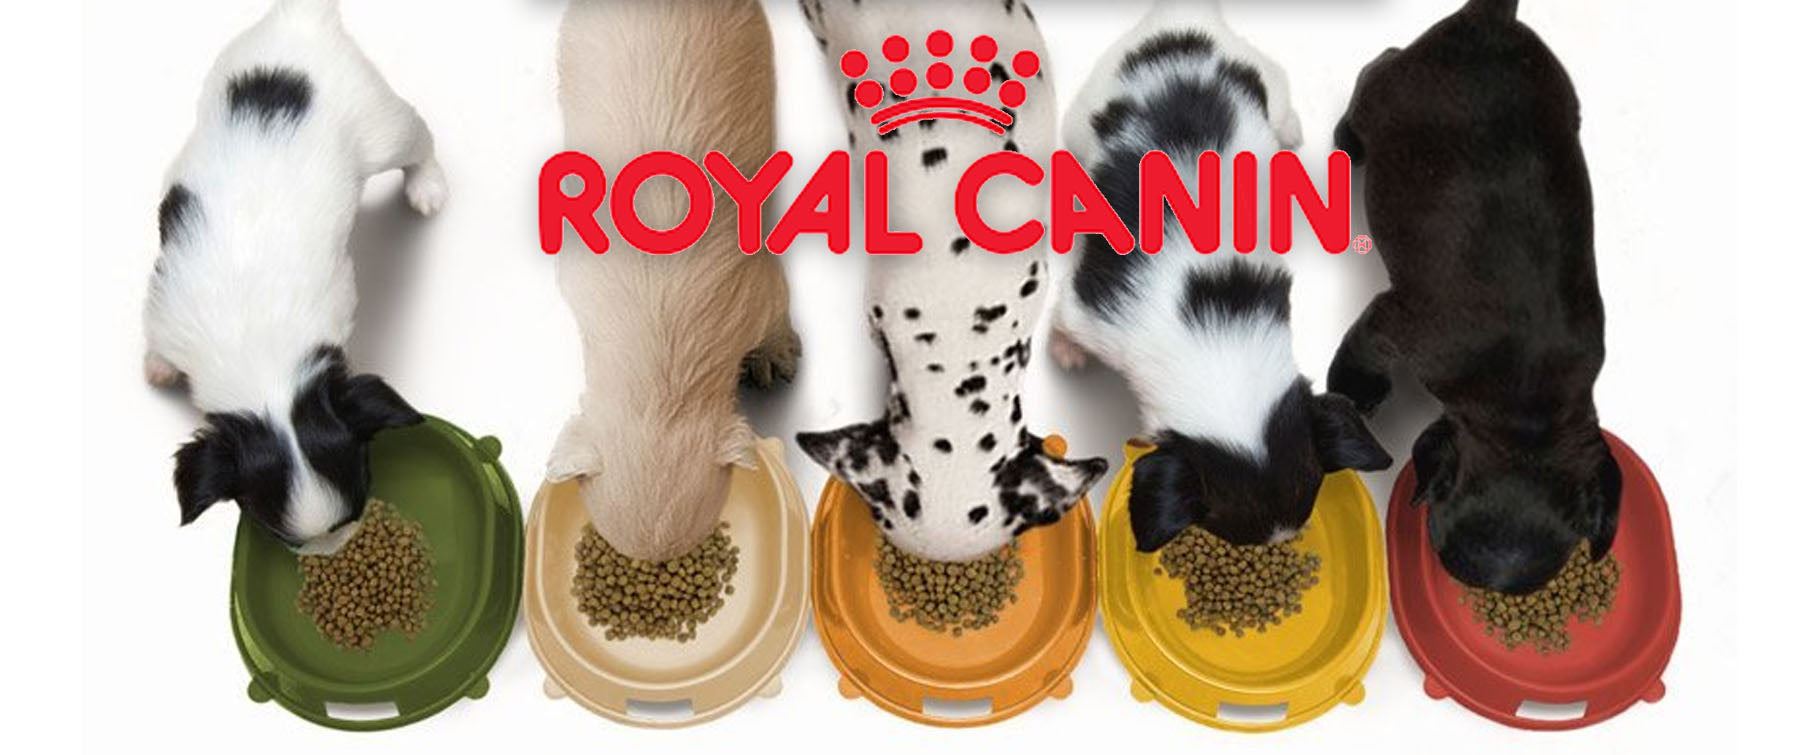 Royal Canin: How is it breed specific?